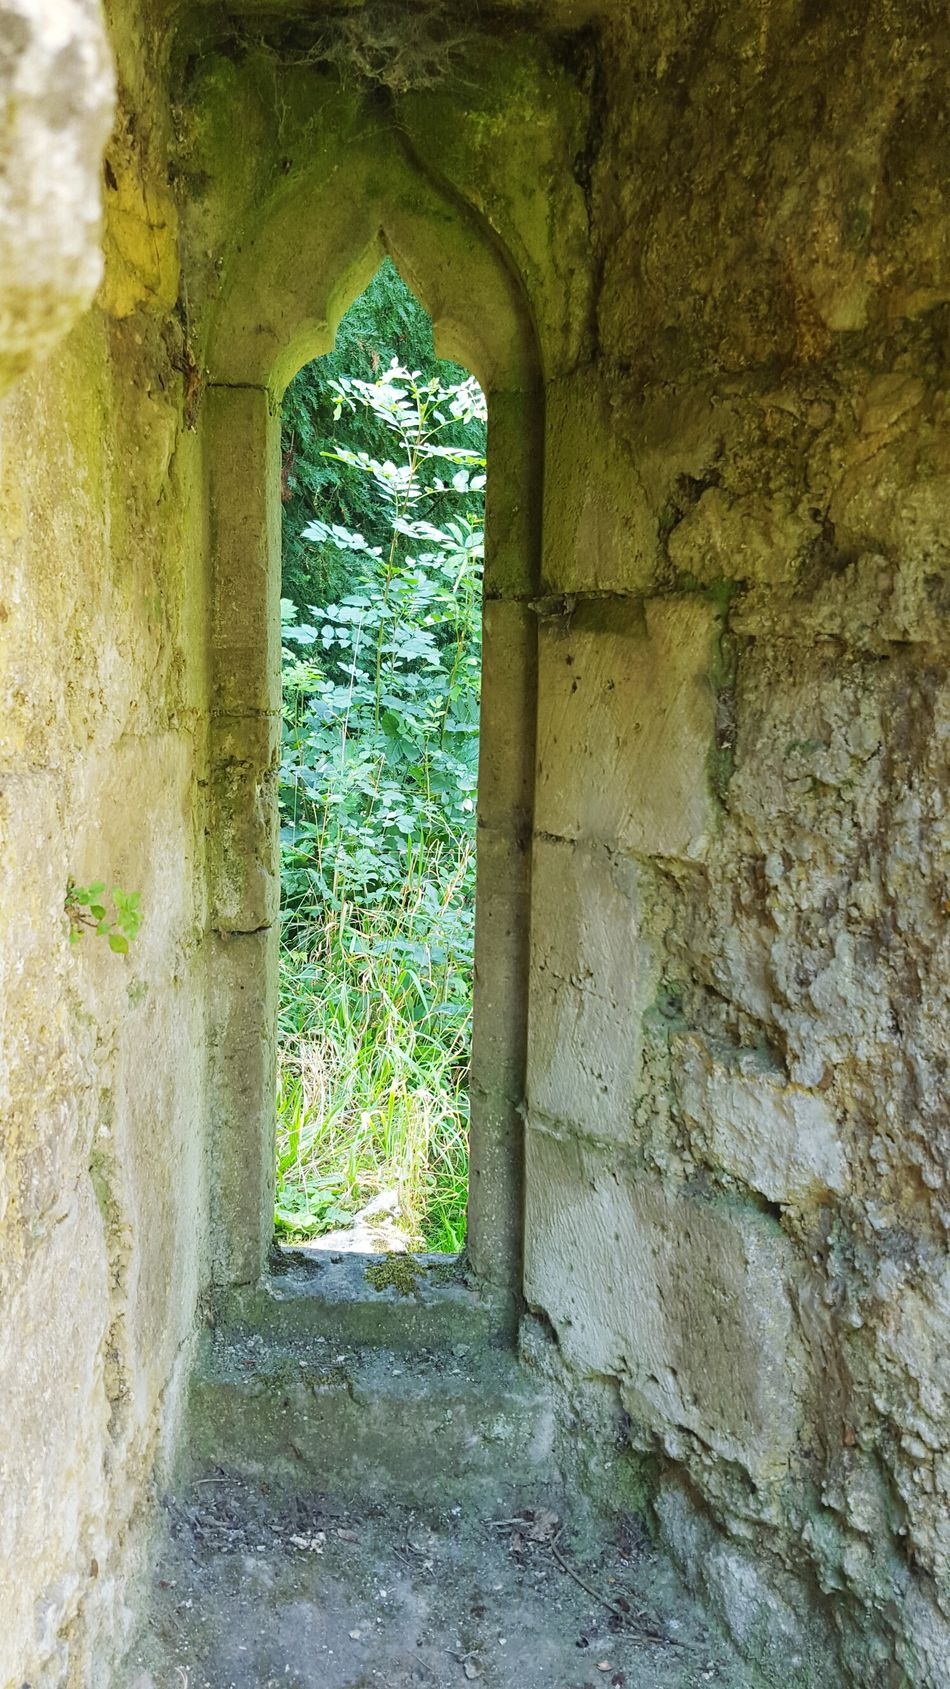 Arch Itecture Arched Windows Ruins Abby Days Out Historic Places Historical Building Architecture_collection Creative Eye